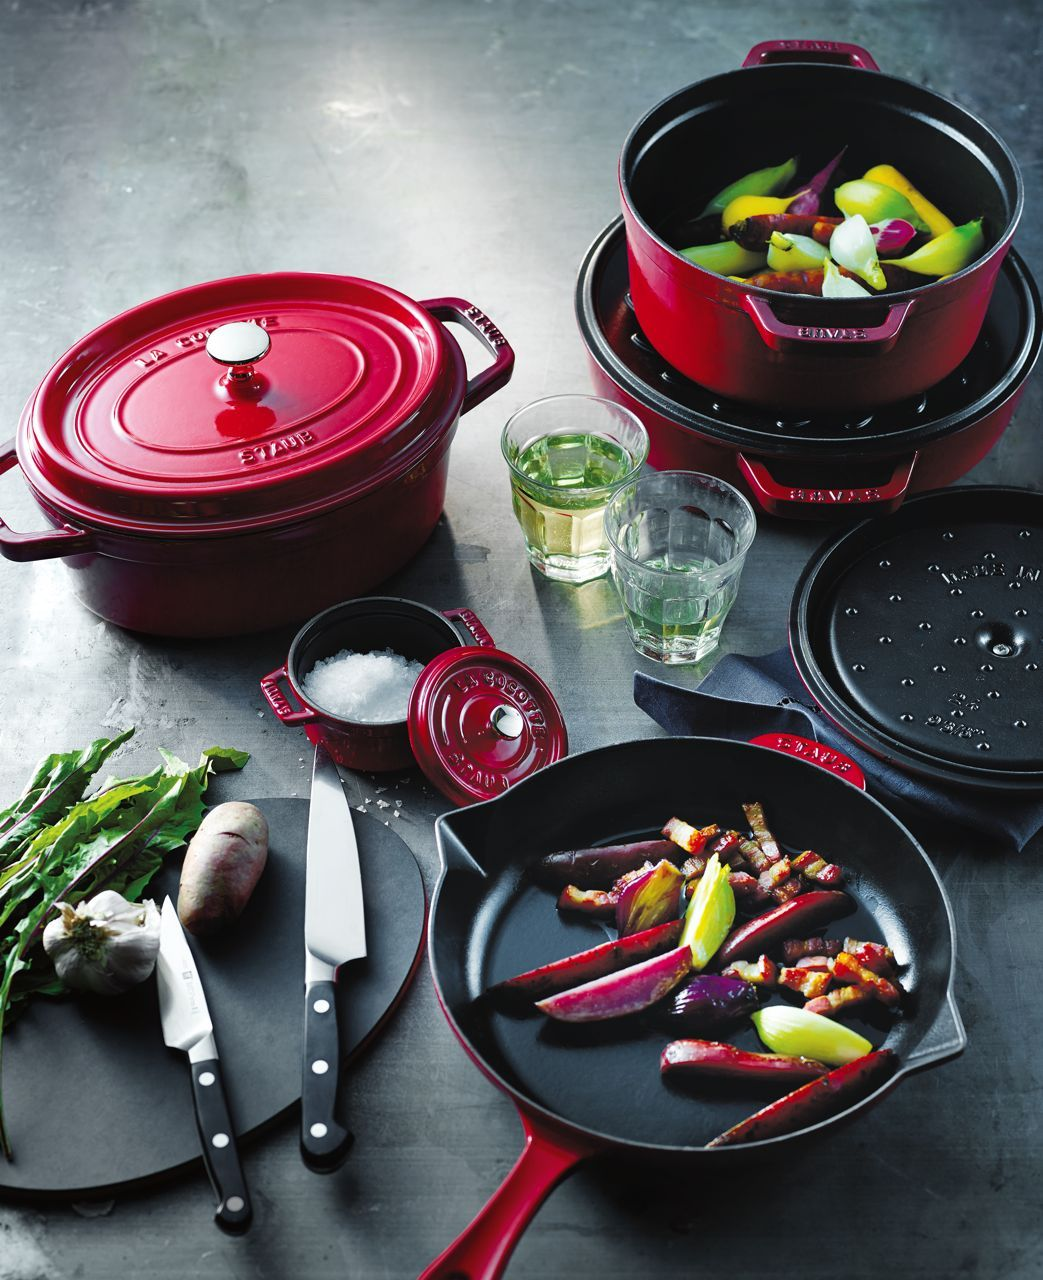 Staub's industrial-chic enameled cast iron cookware comes in red ...